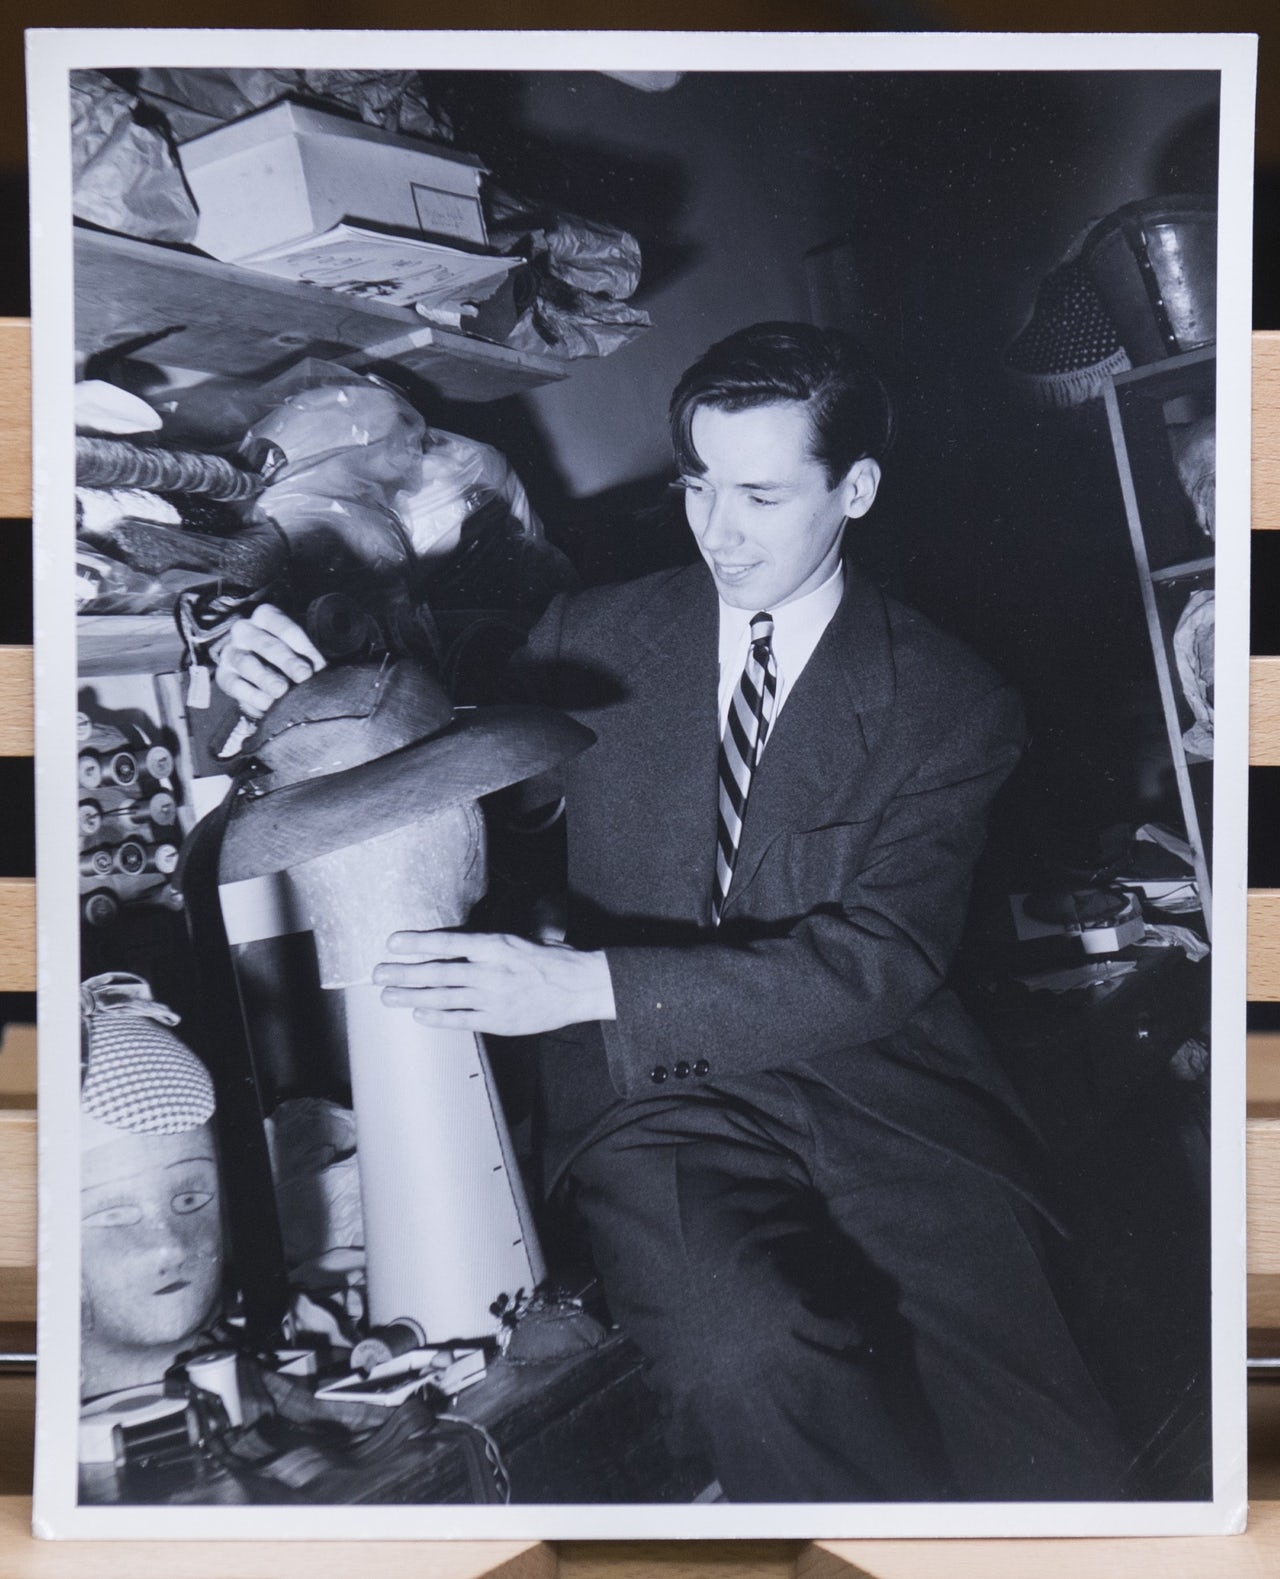 Cunningham during his time as a milliner.